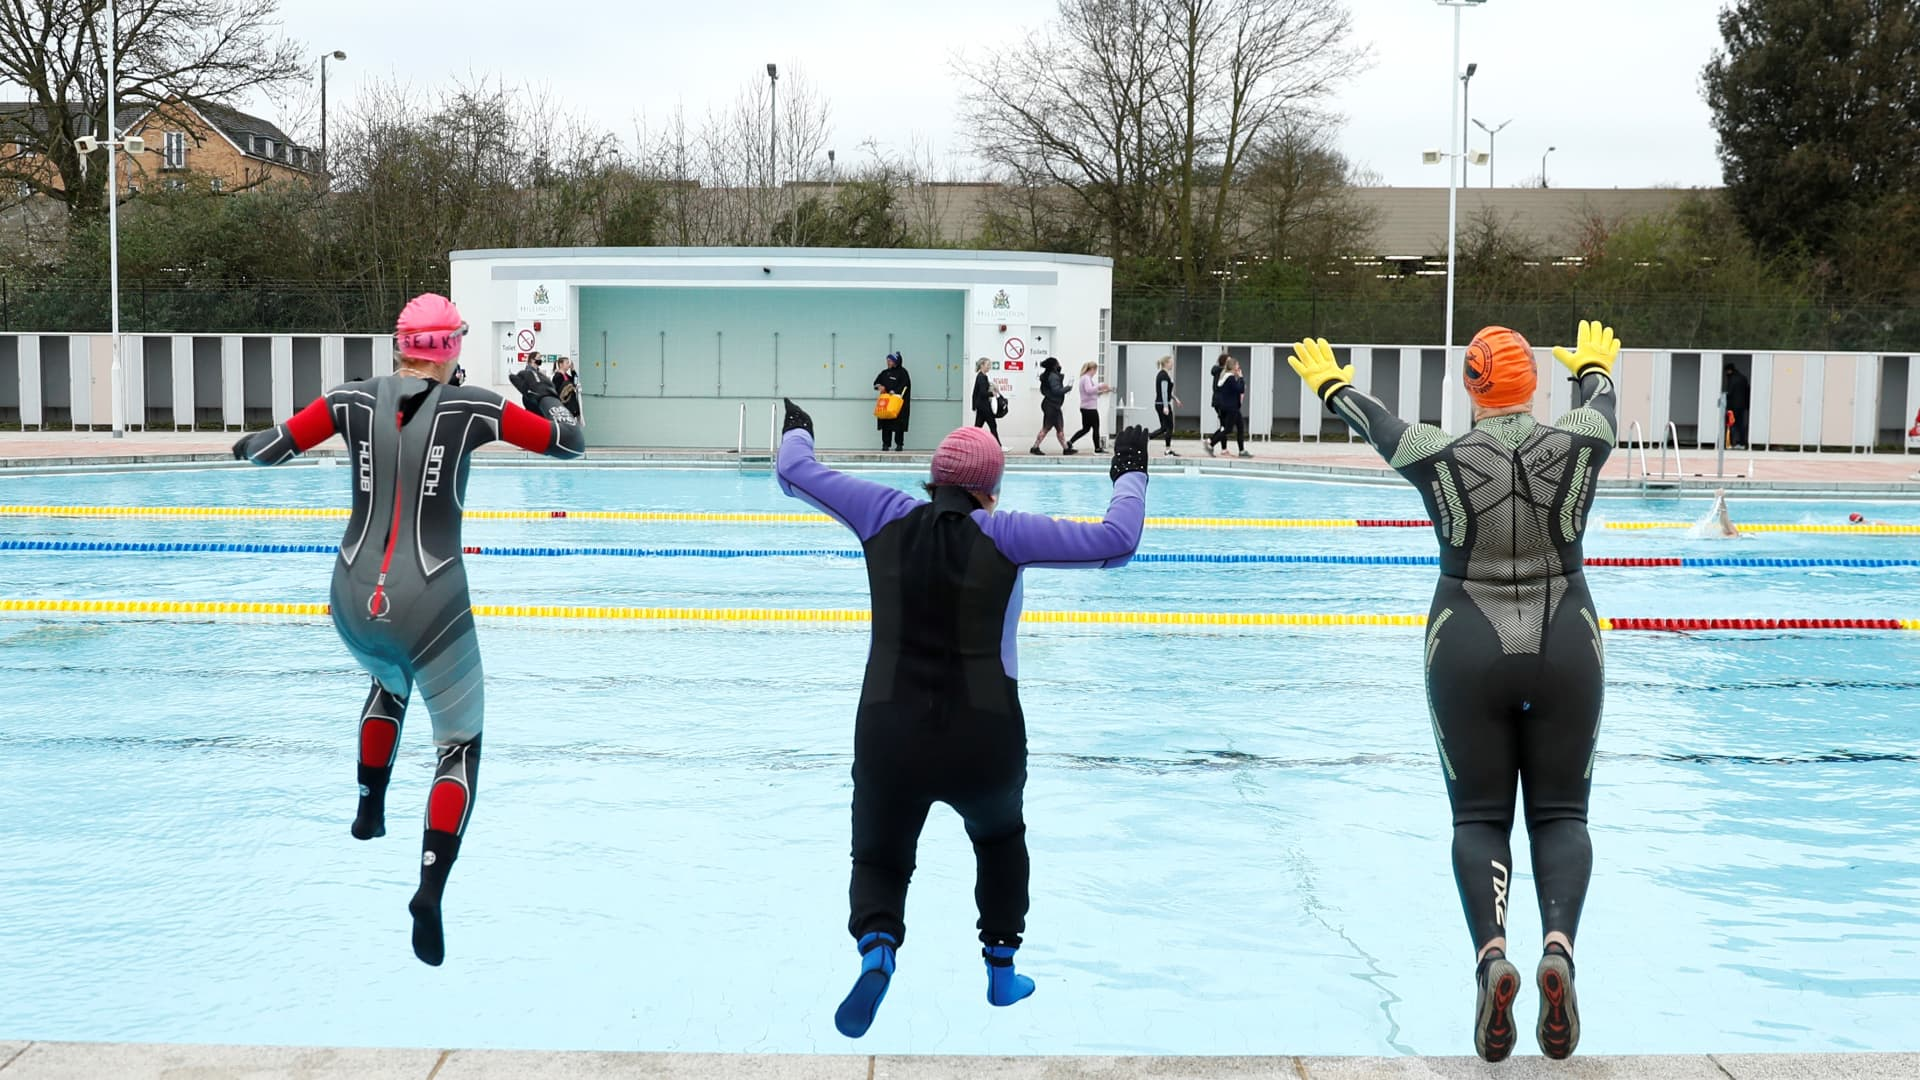 Swimmers jump into the water at Hillingdon lido in west London as England's third Covid-19 lockdown restrictions ease, allowing outdoor sports facilities to open on March 29, 2021.